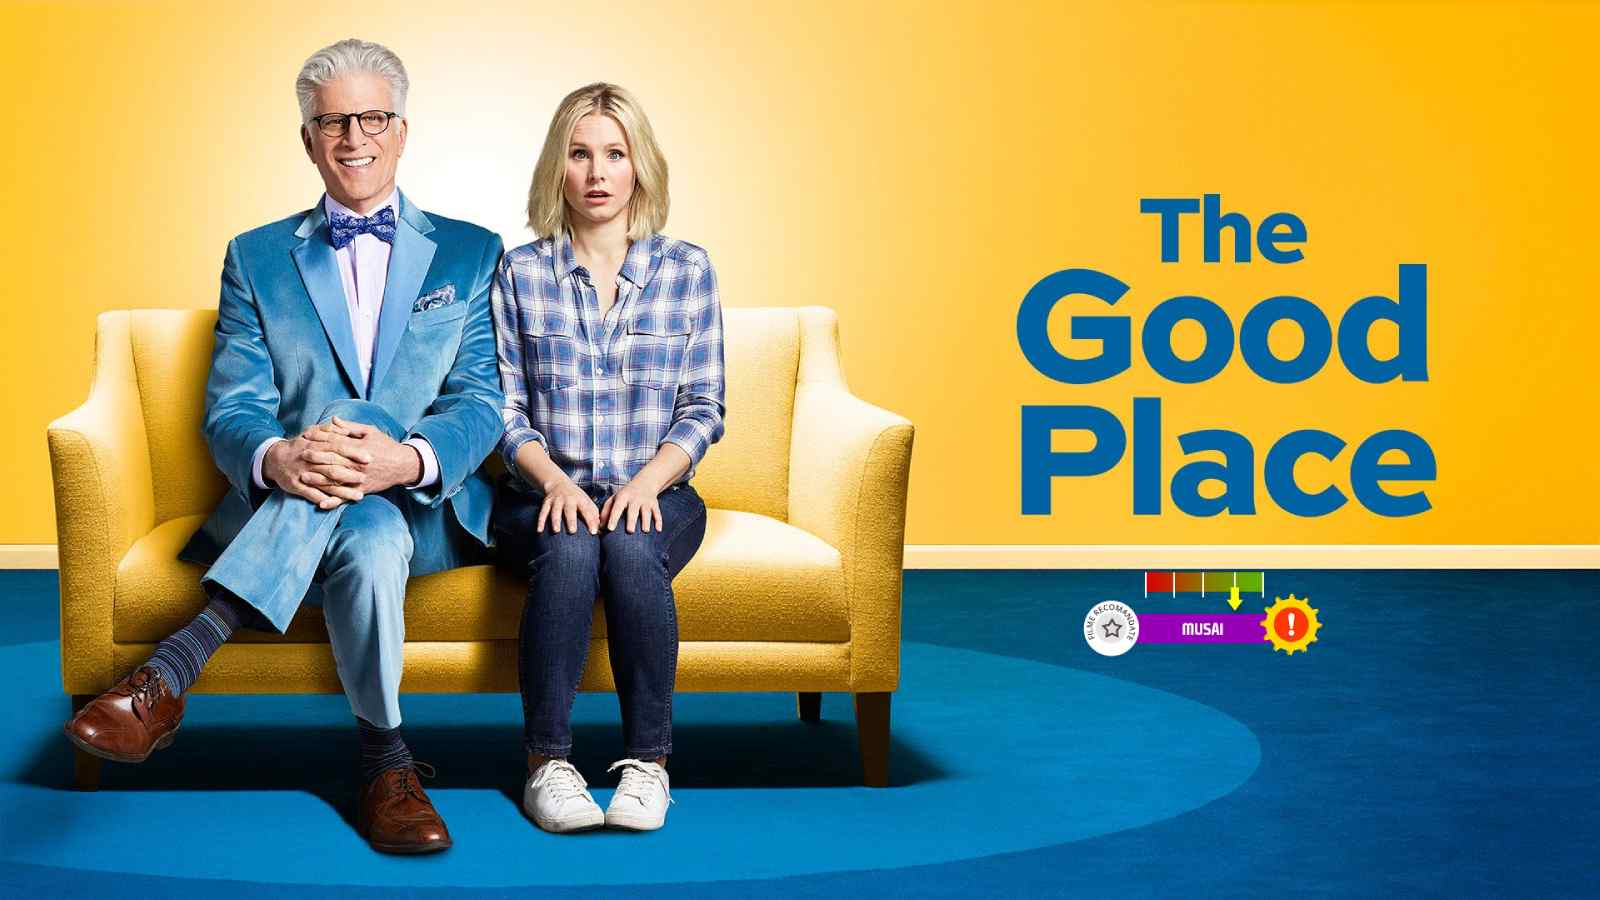 The Good Place (2016-2020)